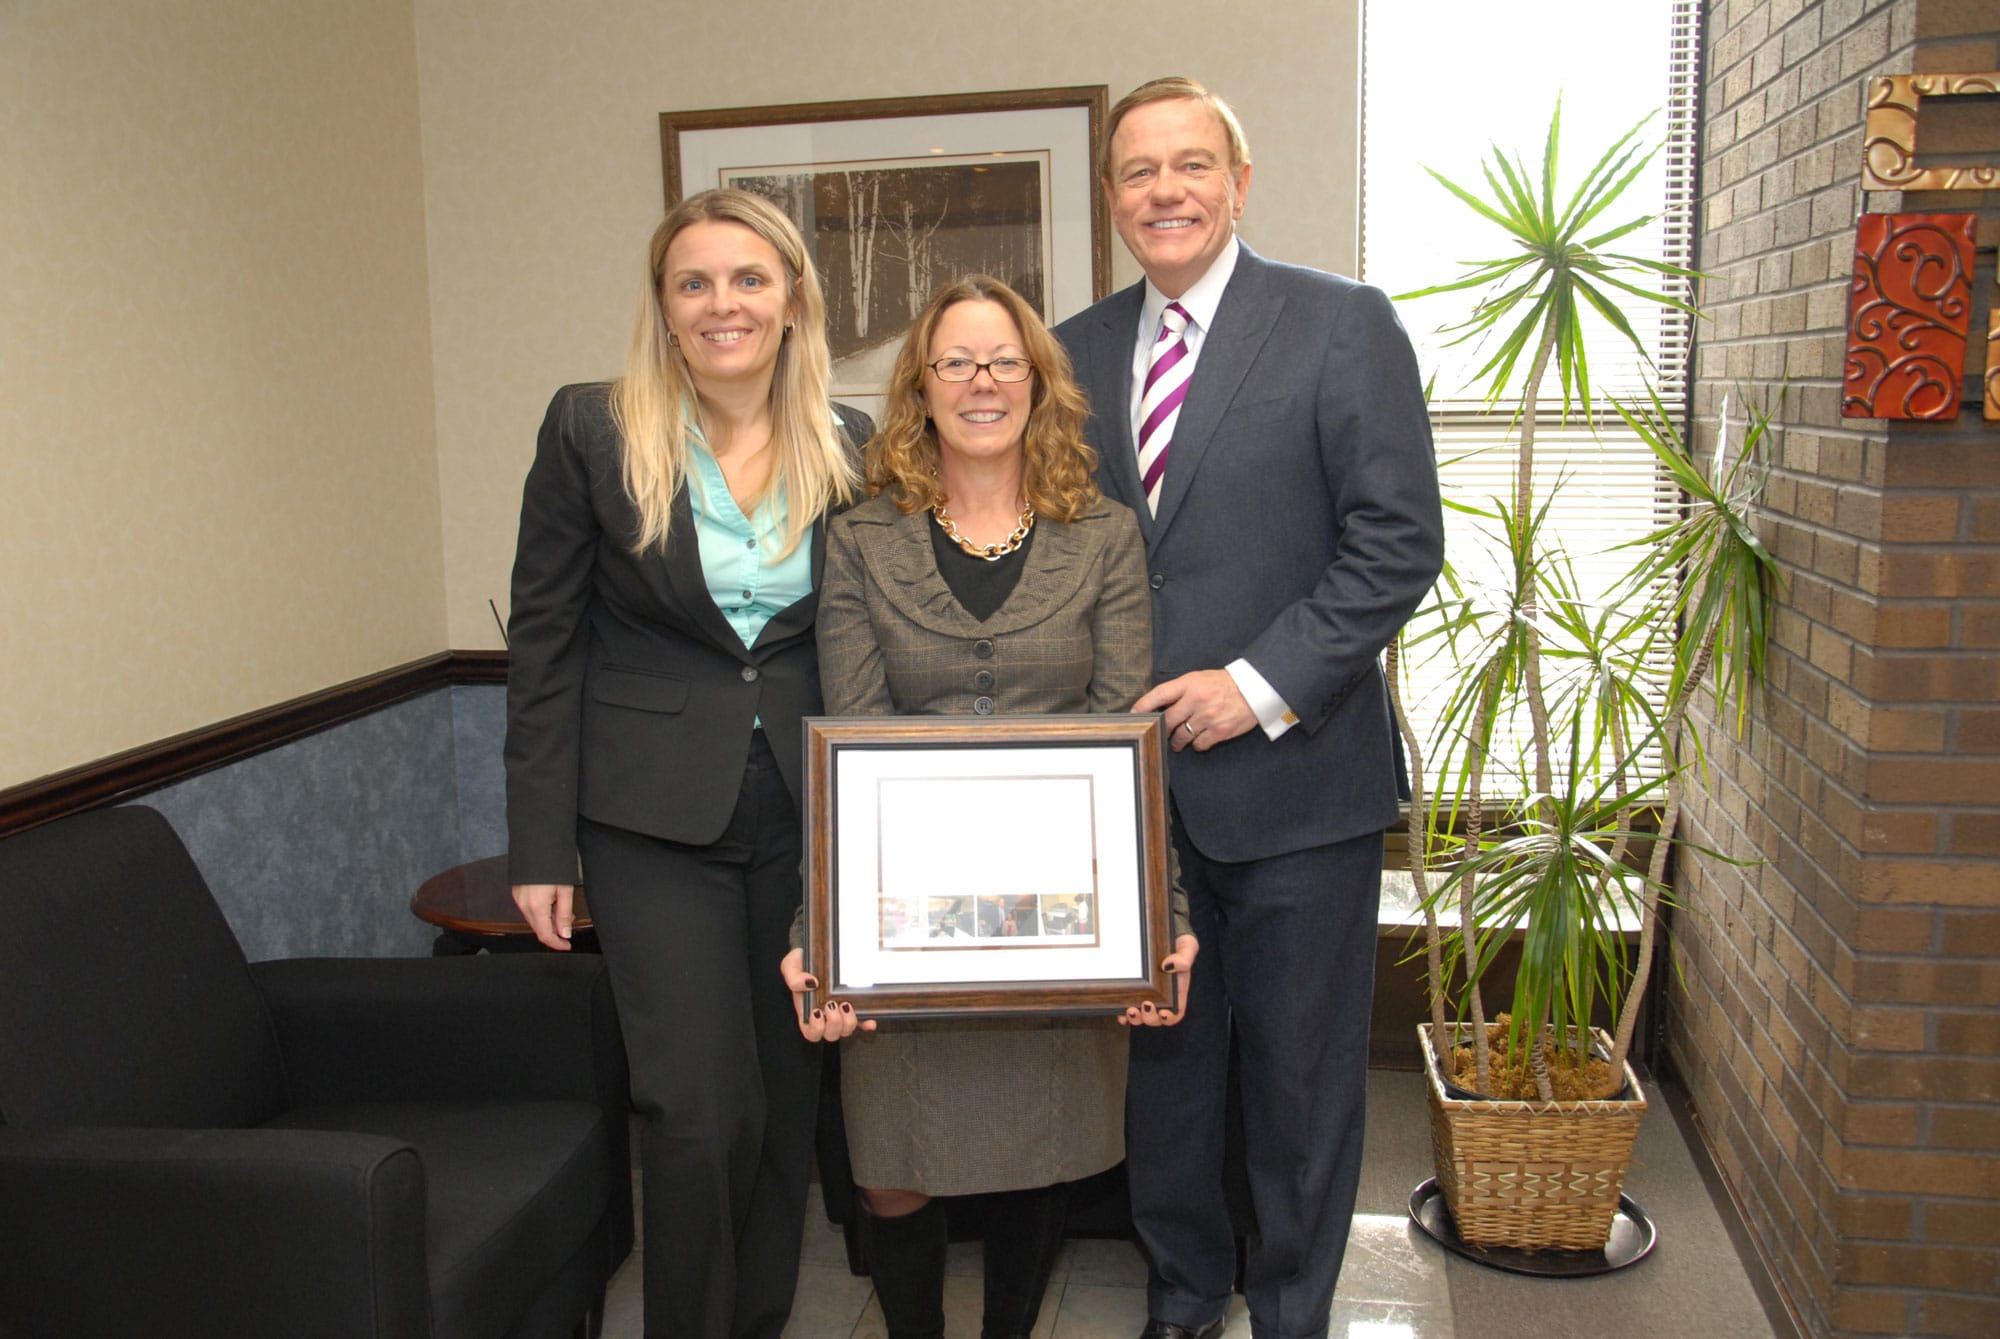 From left: Svetlana Repic-Qira, Regional Vice President of New Jersey for Community Options; Elizabeth Connolly Acting Commissioner of the New Jersey Department of Human Services; Robert Stack, Founder President and CEO of Community Options. Community Options presented Ms. Connolly with a plaque to commemorate her visit to the Daily Plan It in Princeton, New Jersey.